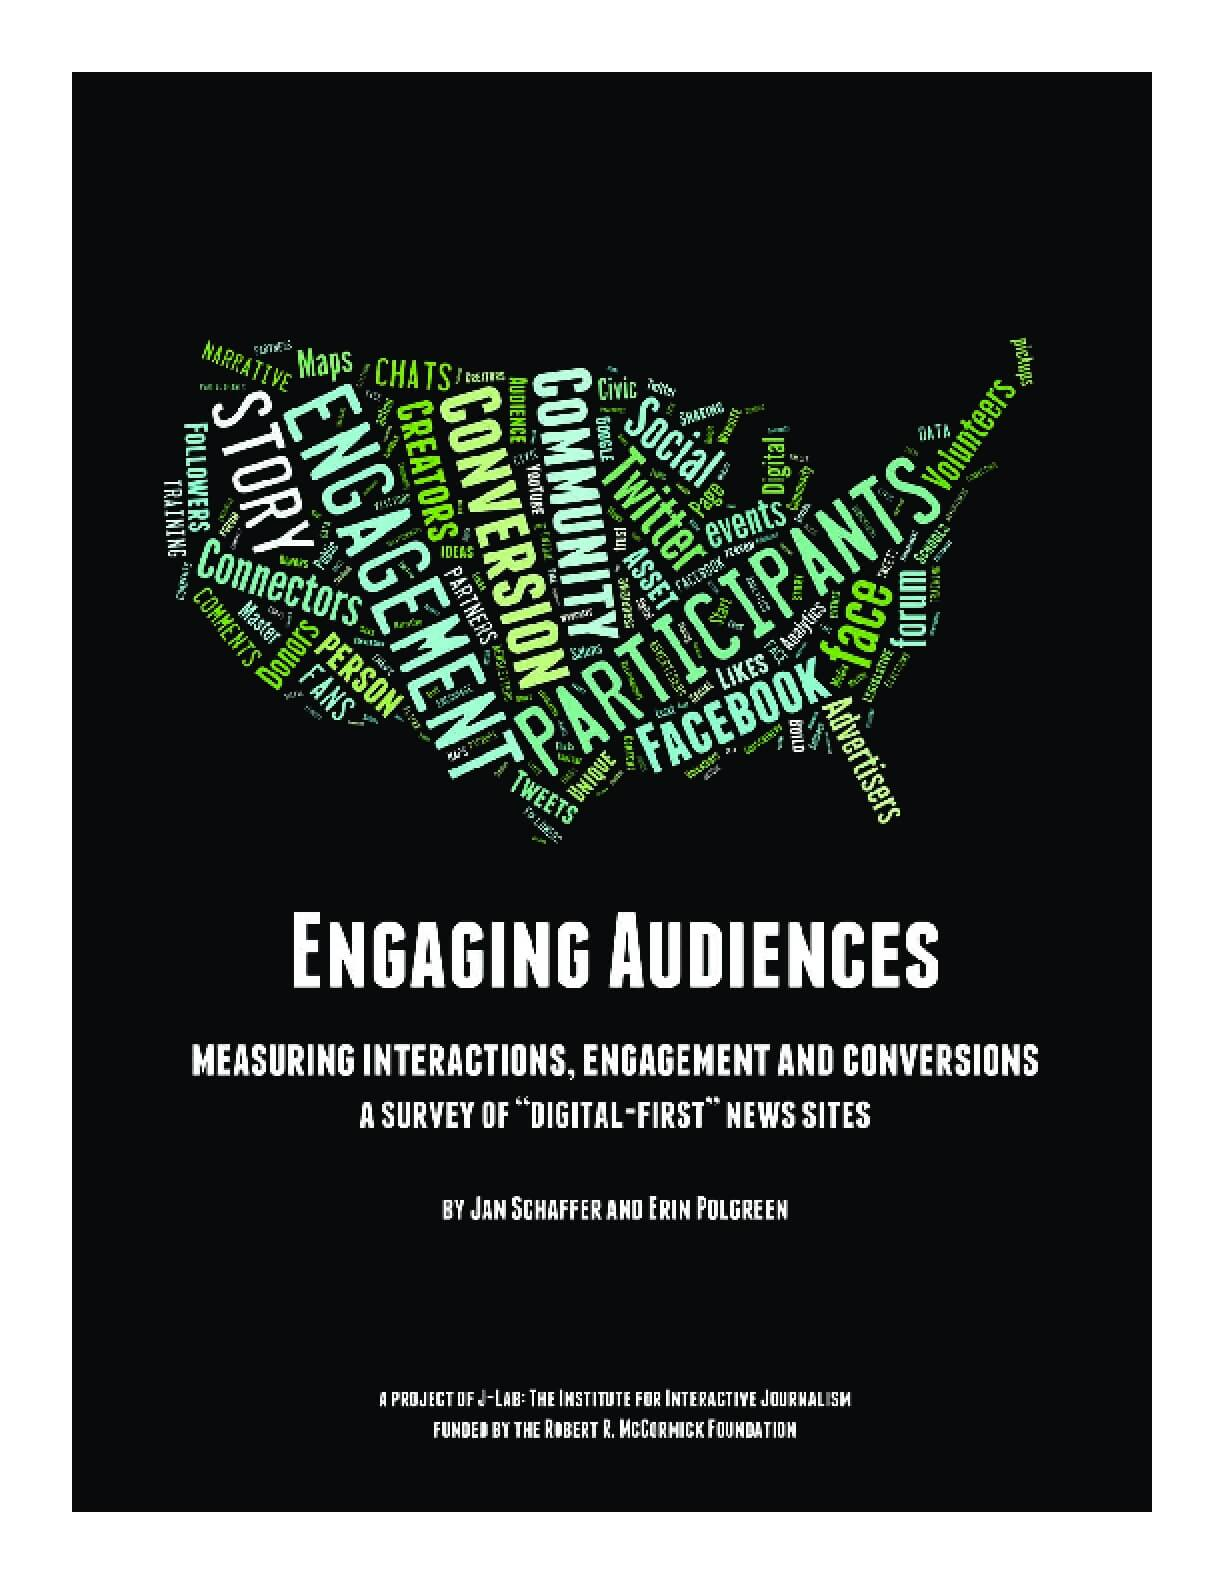 Engaging Audiences: Measuring Interactions, Engagement and Conversions